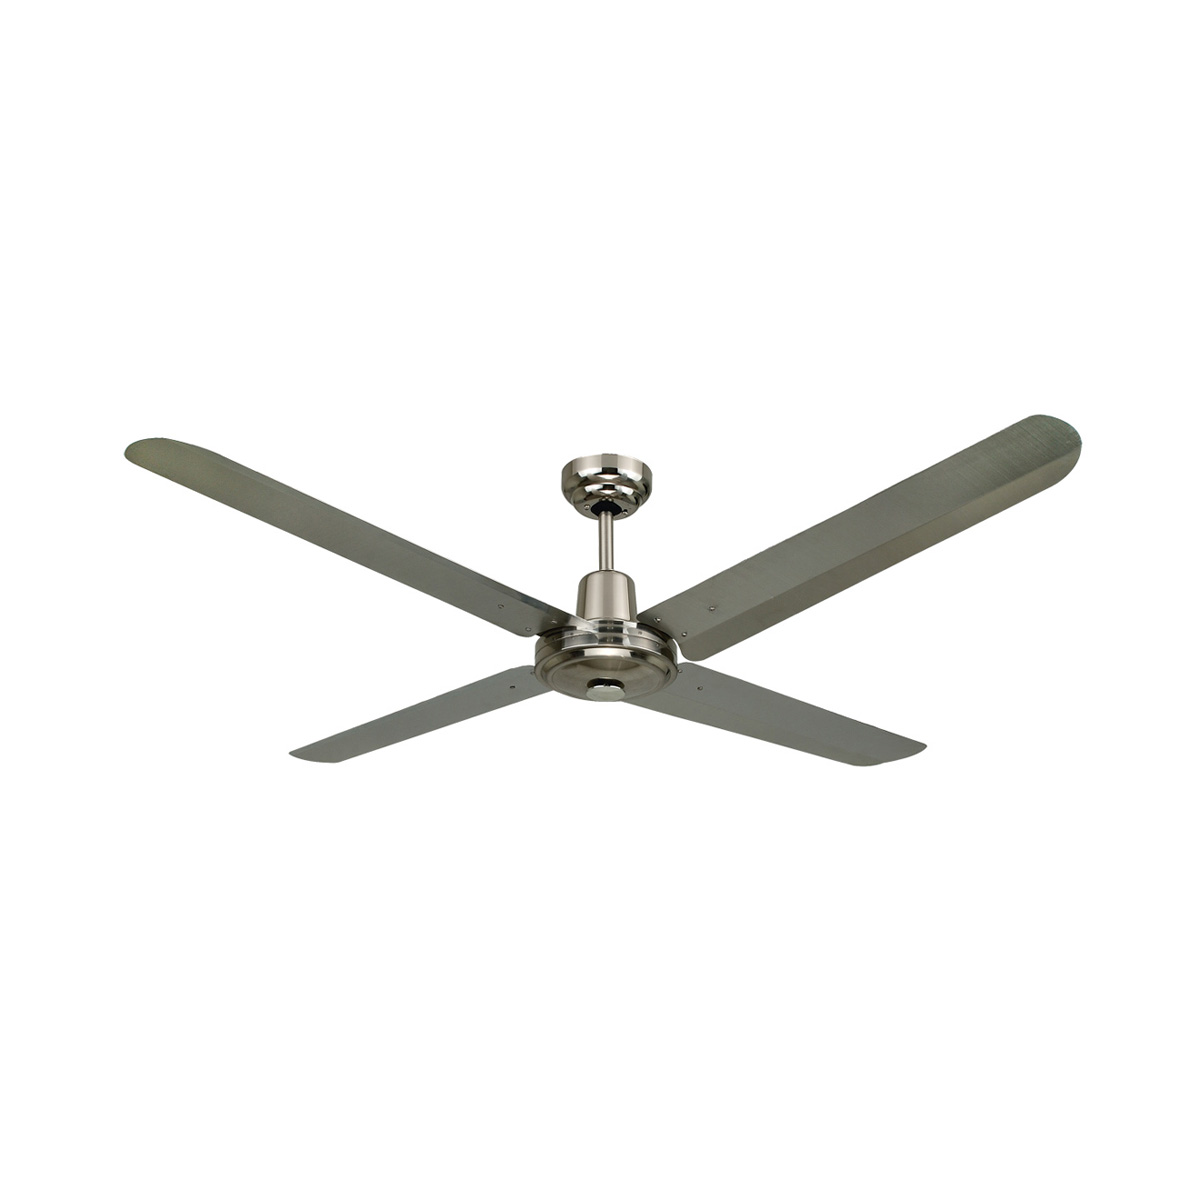 ceiling fan 4 blades. blizzard56\u0027\u0027 1200mm 316ss ceiling fan - 4 blades